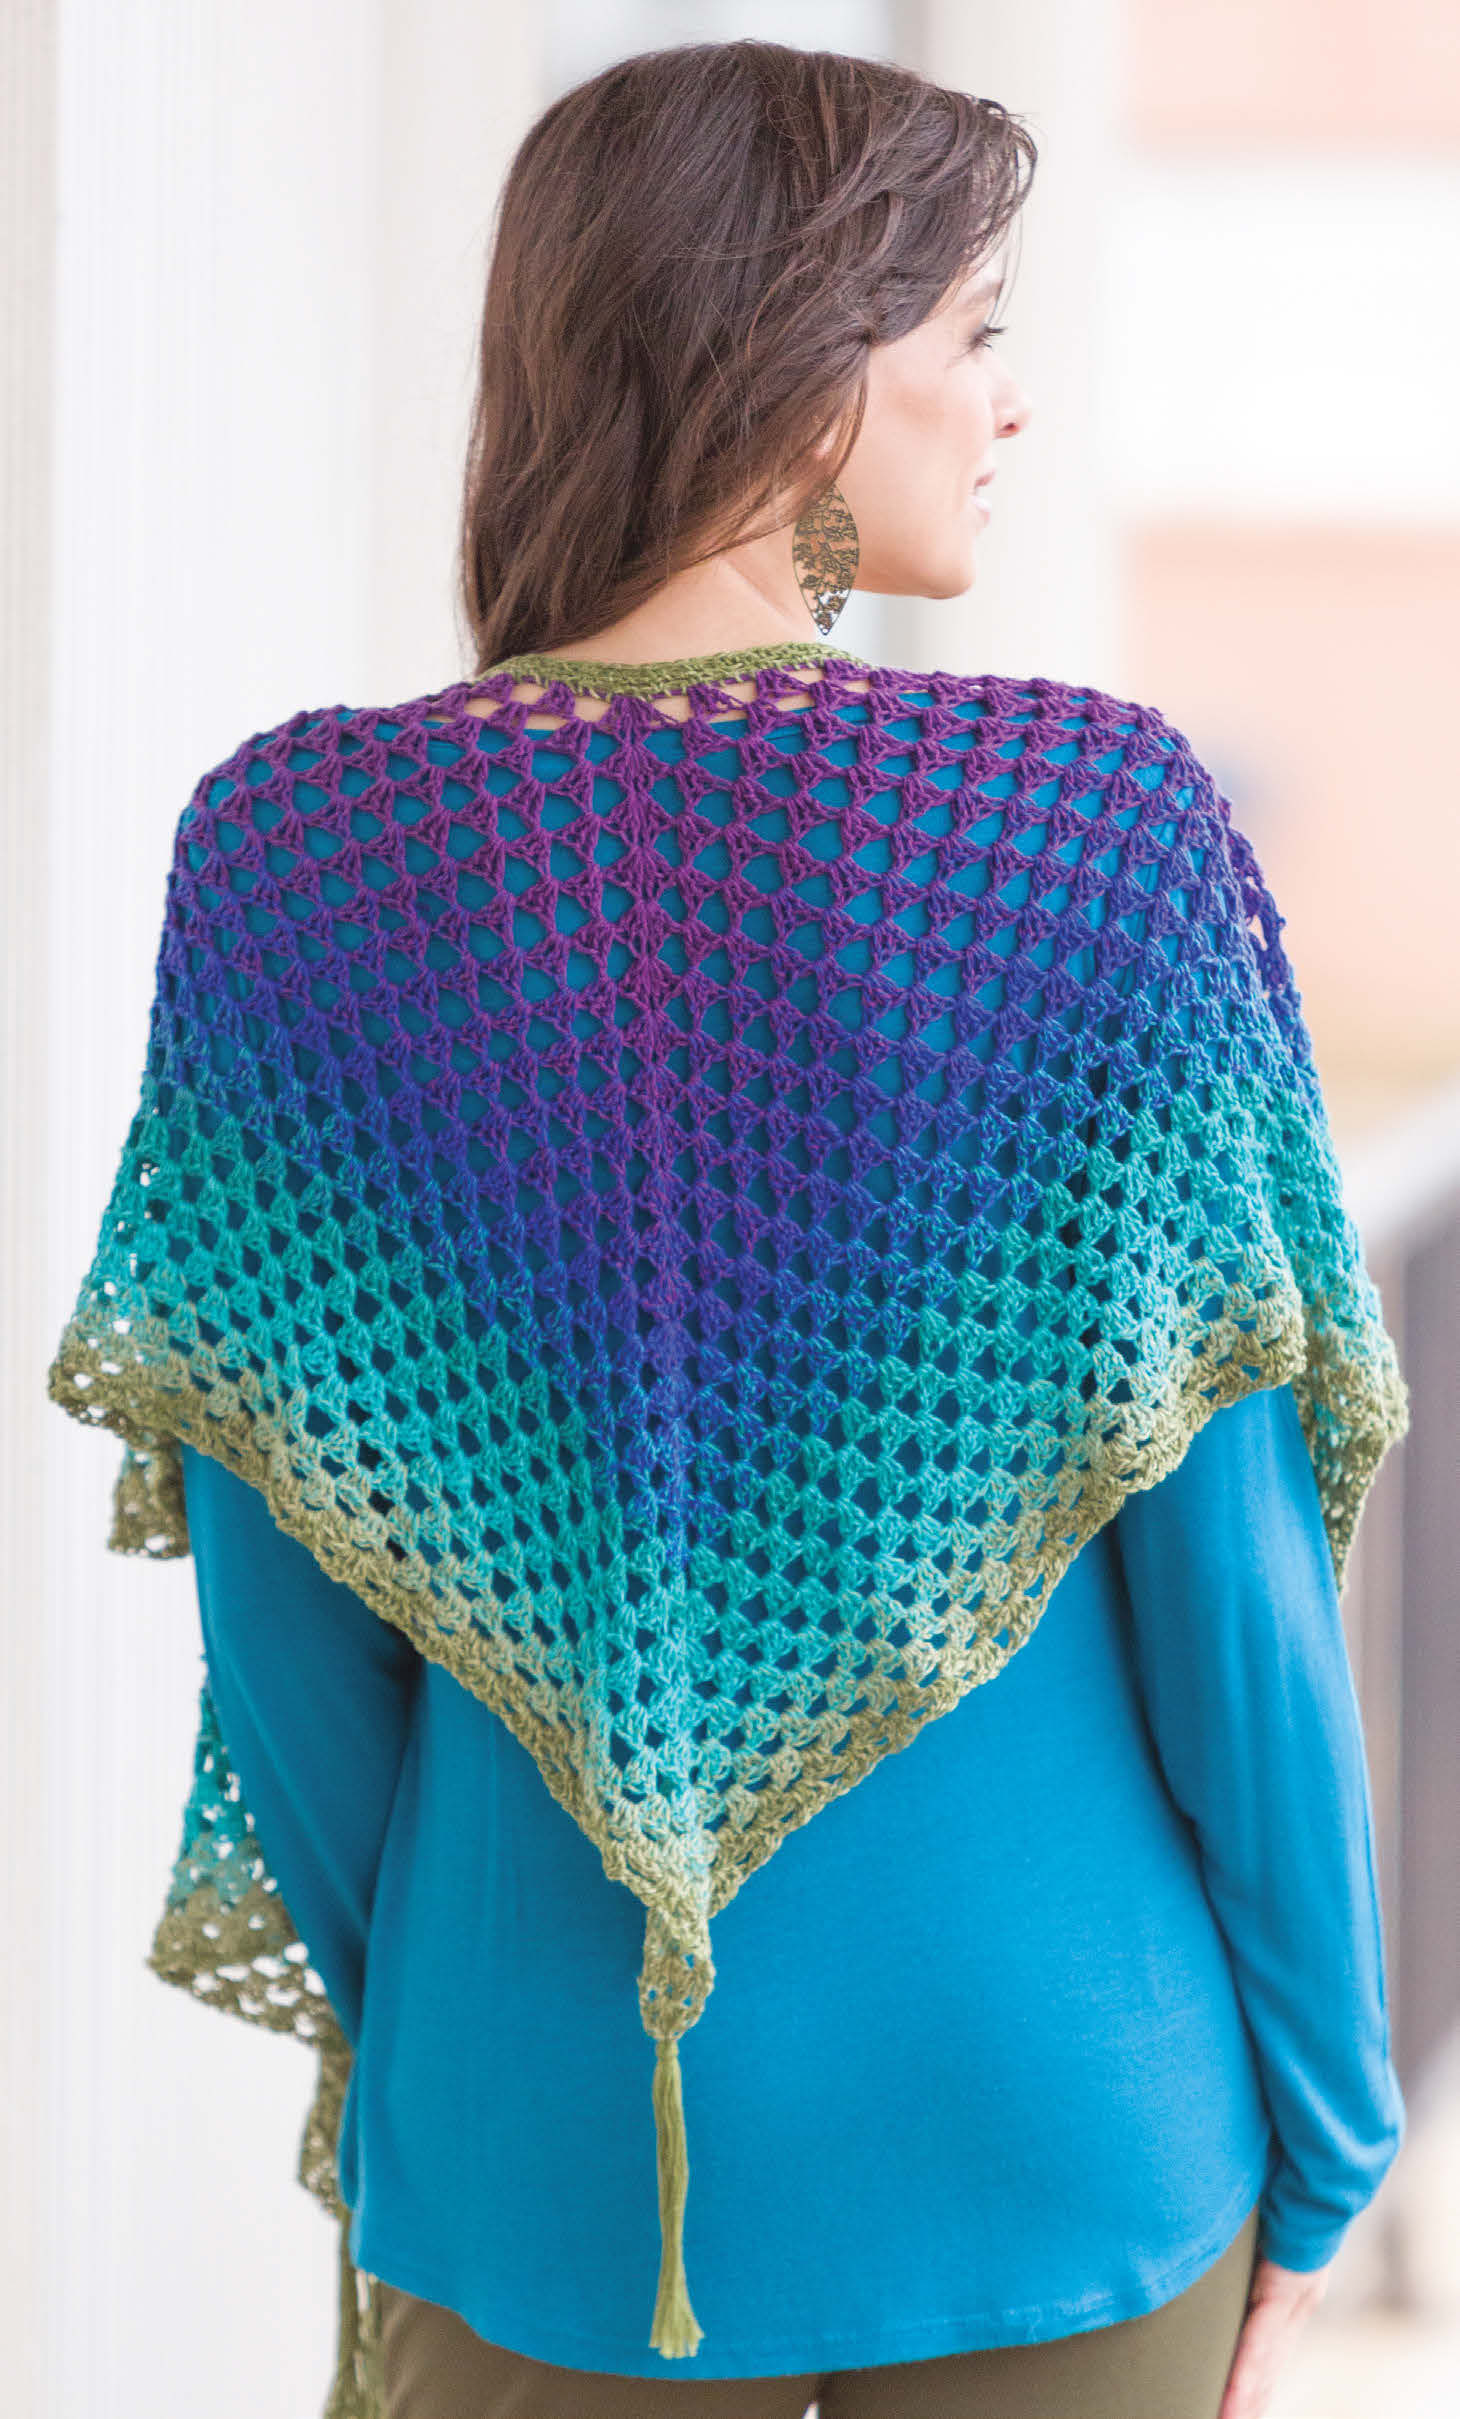 Give It a Whirl Tassel Shawl